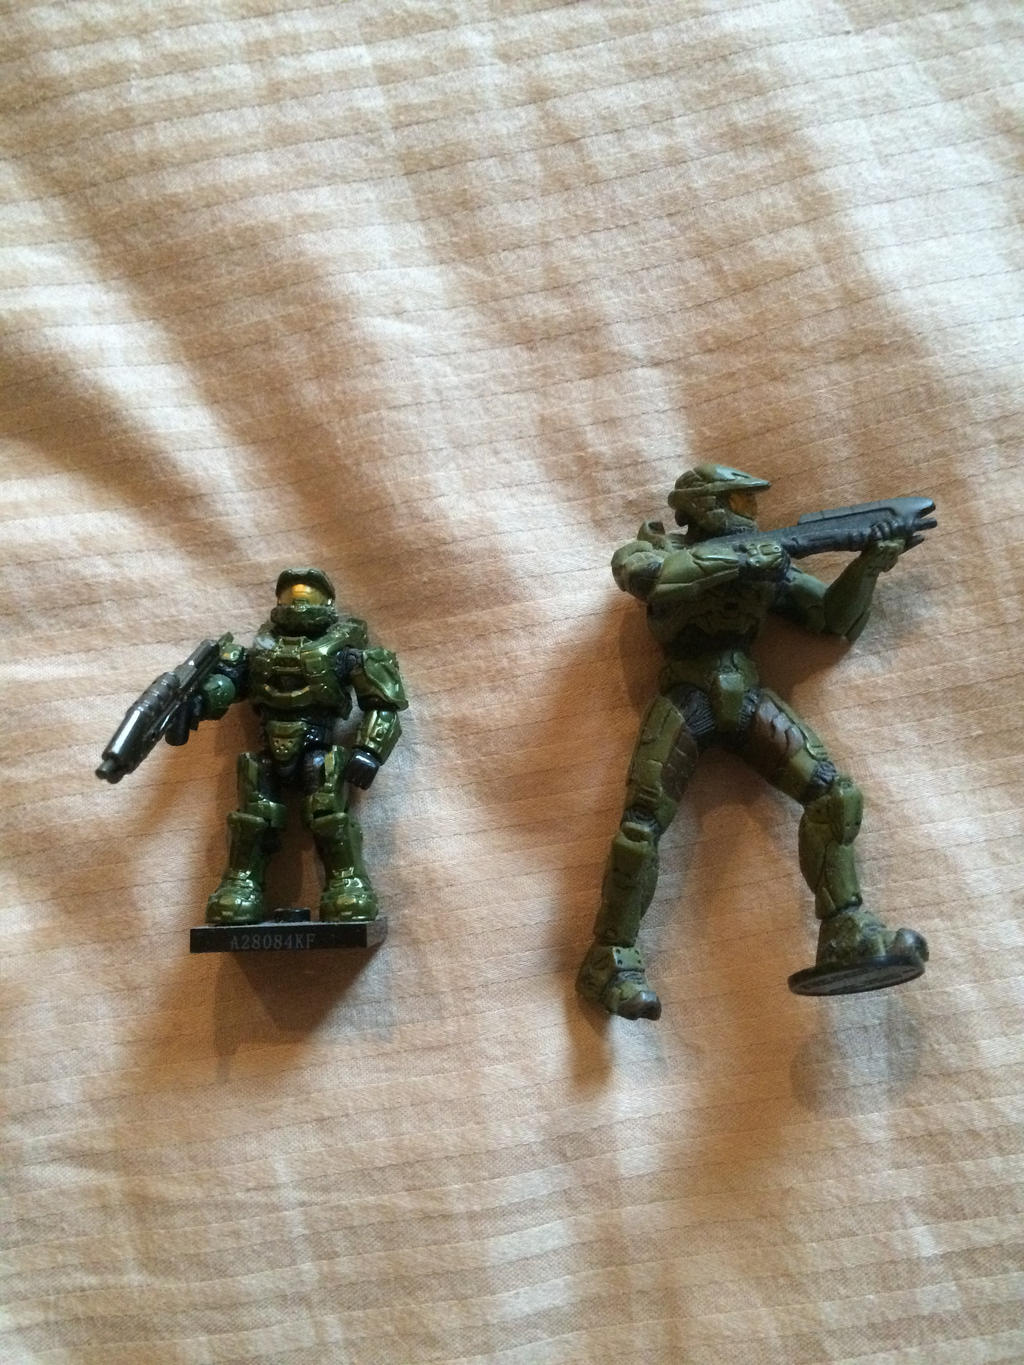 15_years_of_halo_small_figures_by_techta